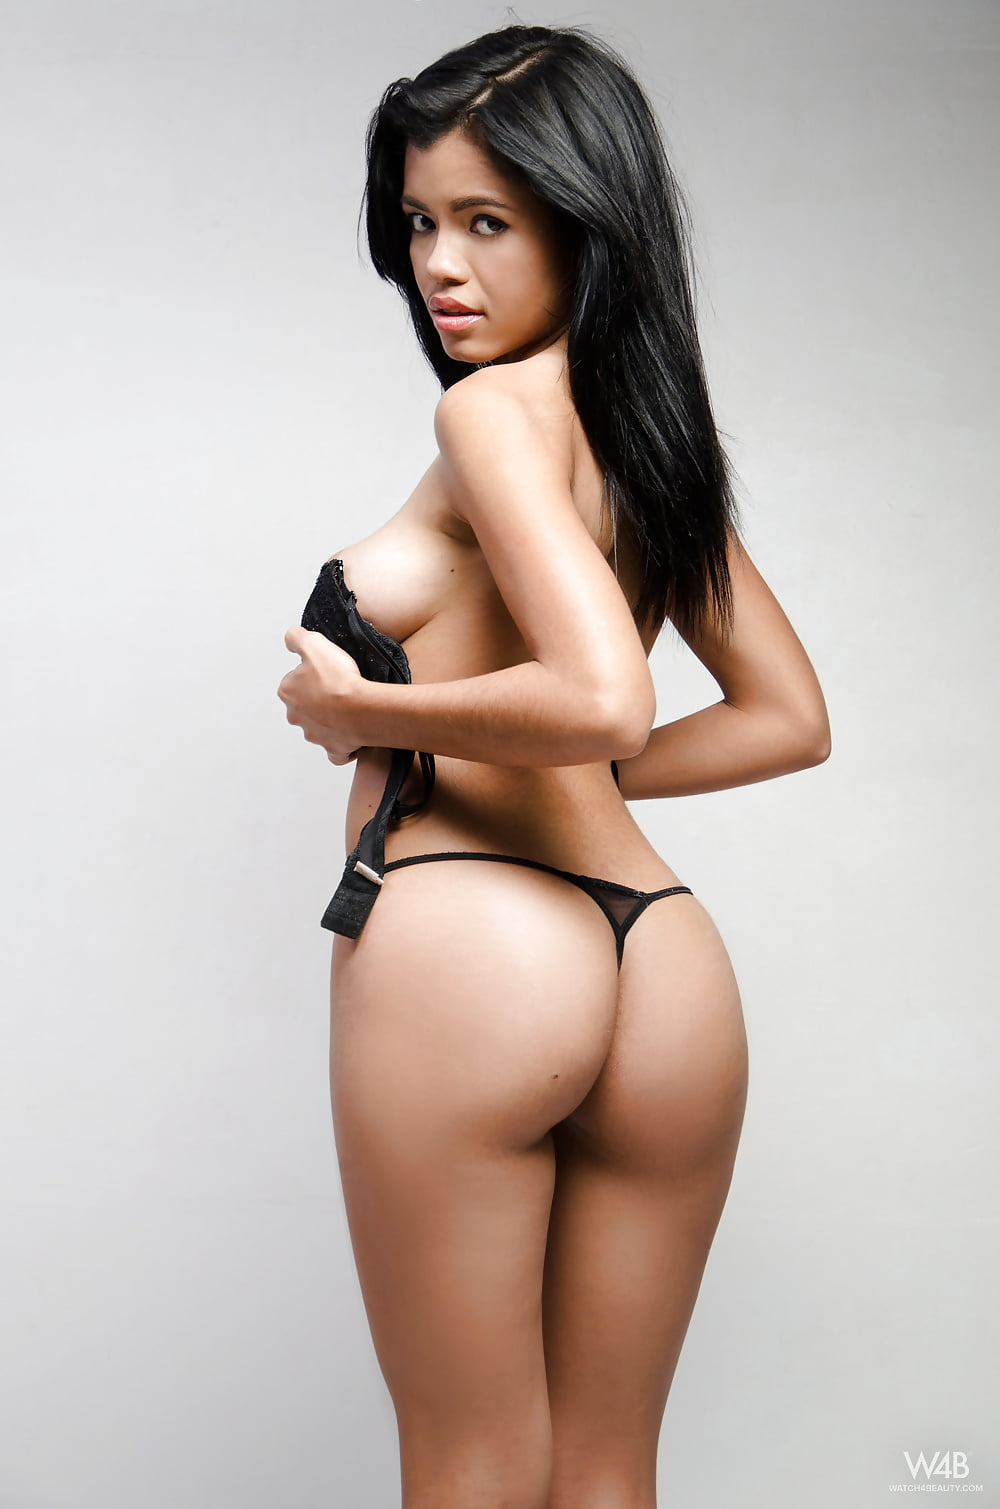 Sexy colombian women pictures